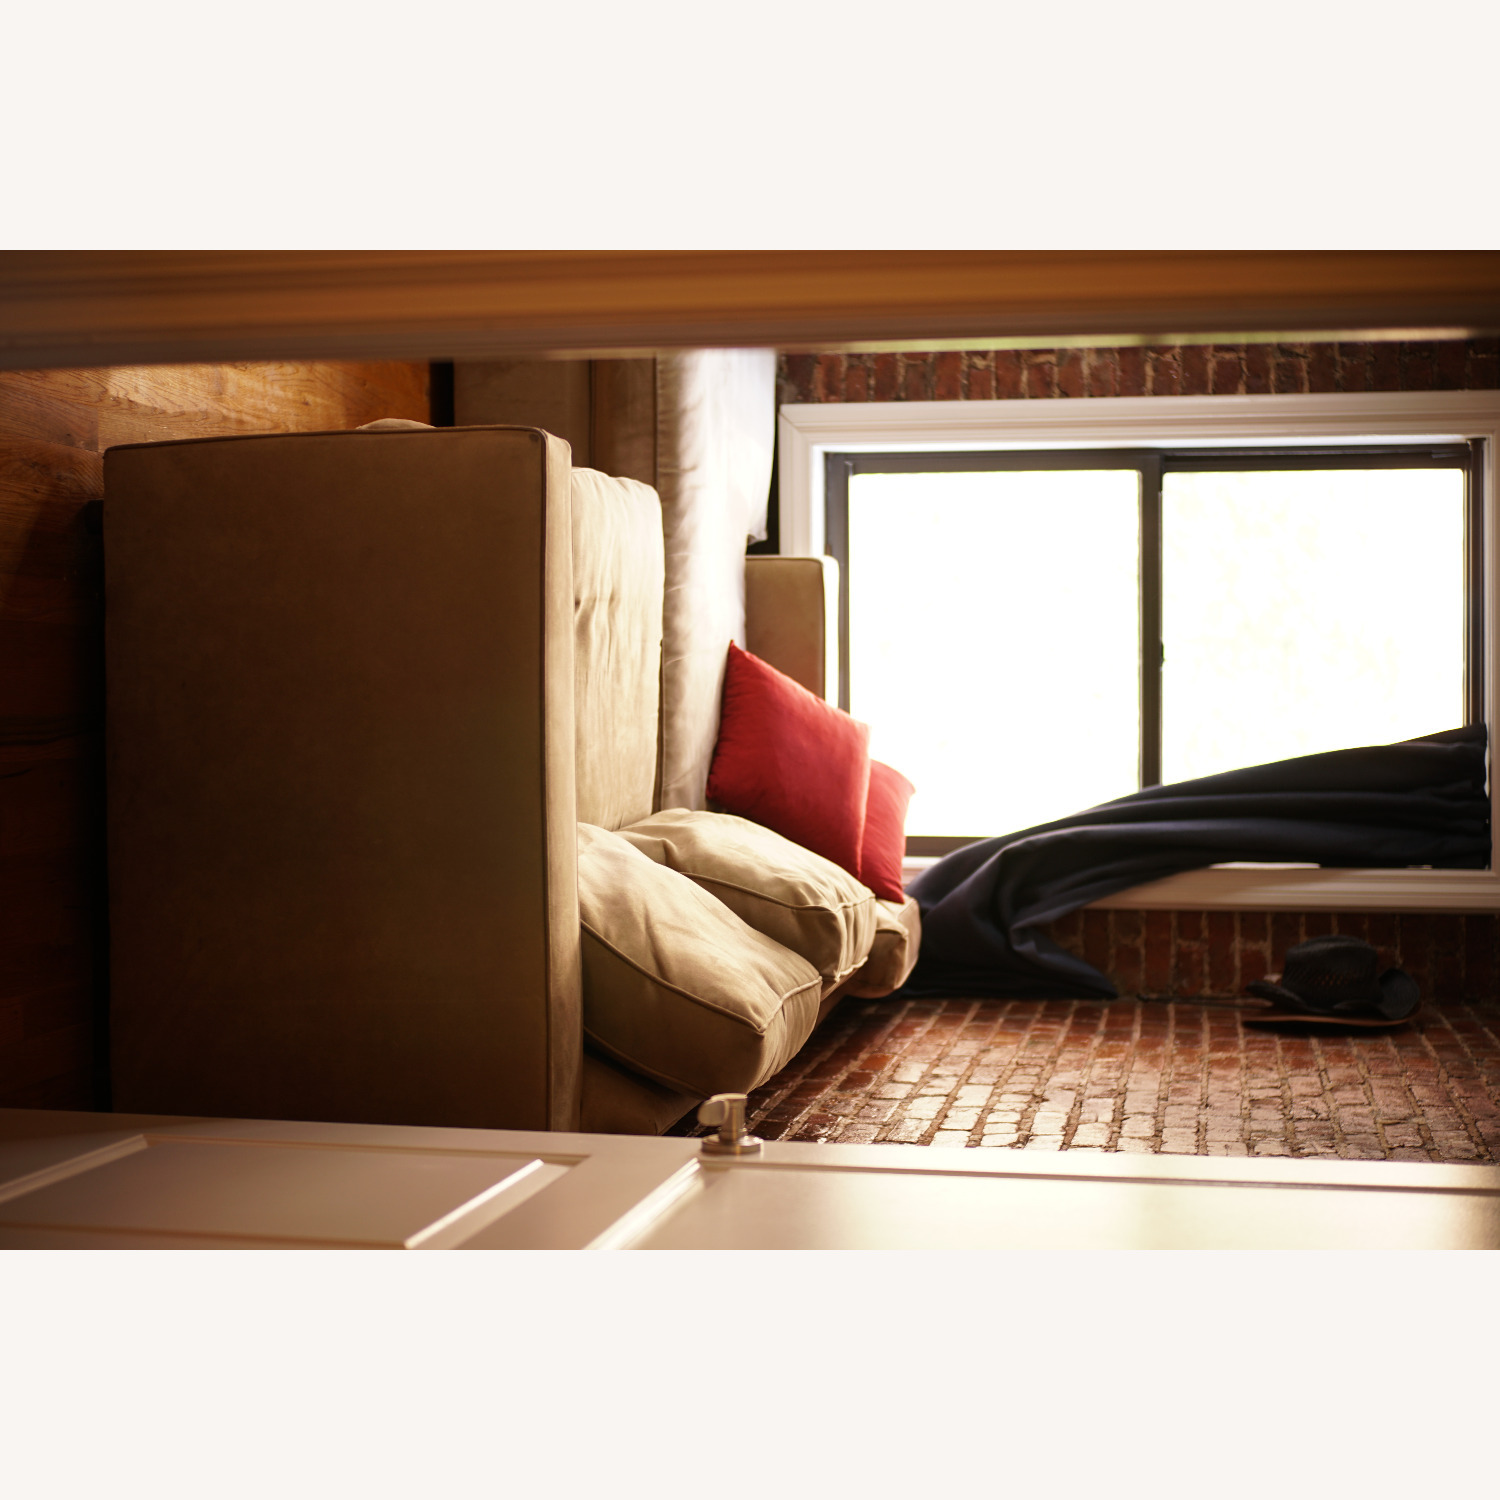 Medium Comfy Couch - image-5